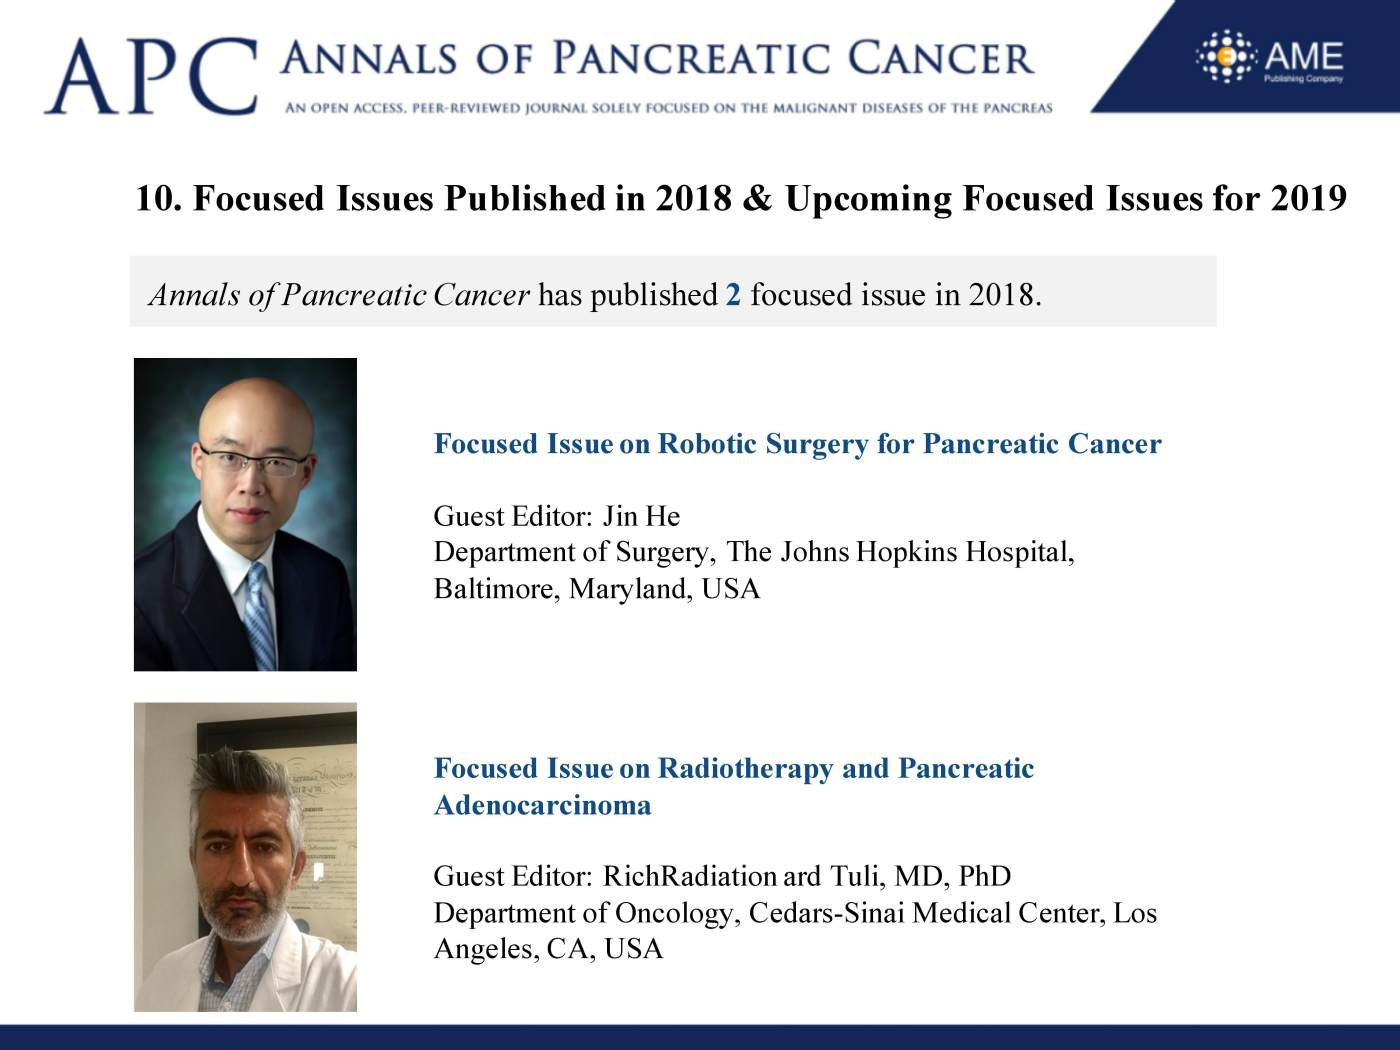 APC Annual Report 2018 - Annals of Pancreatic Cancer